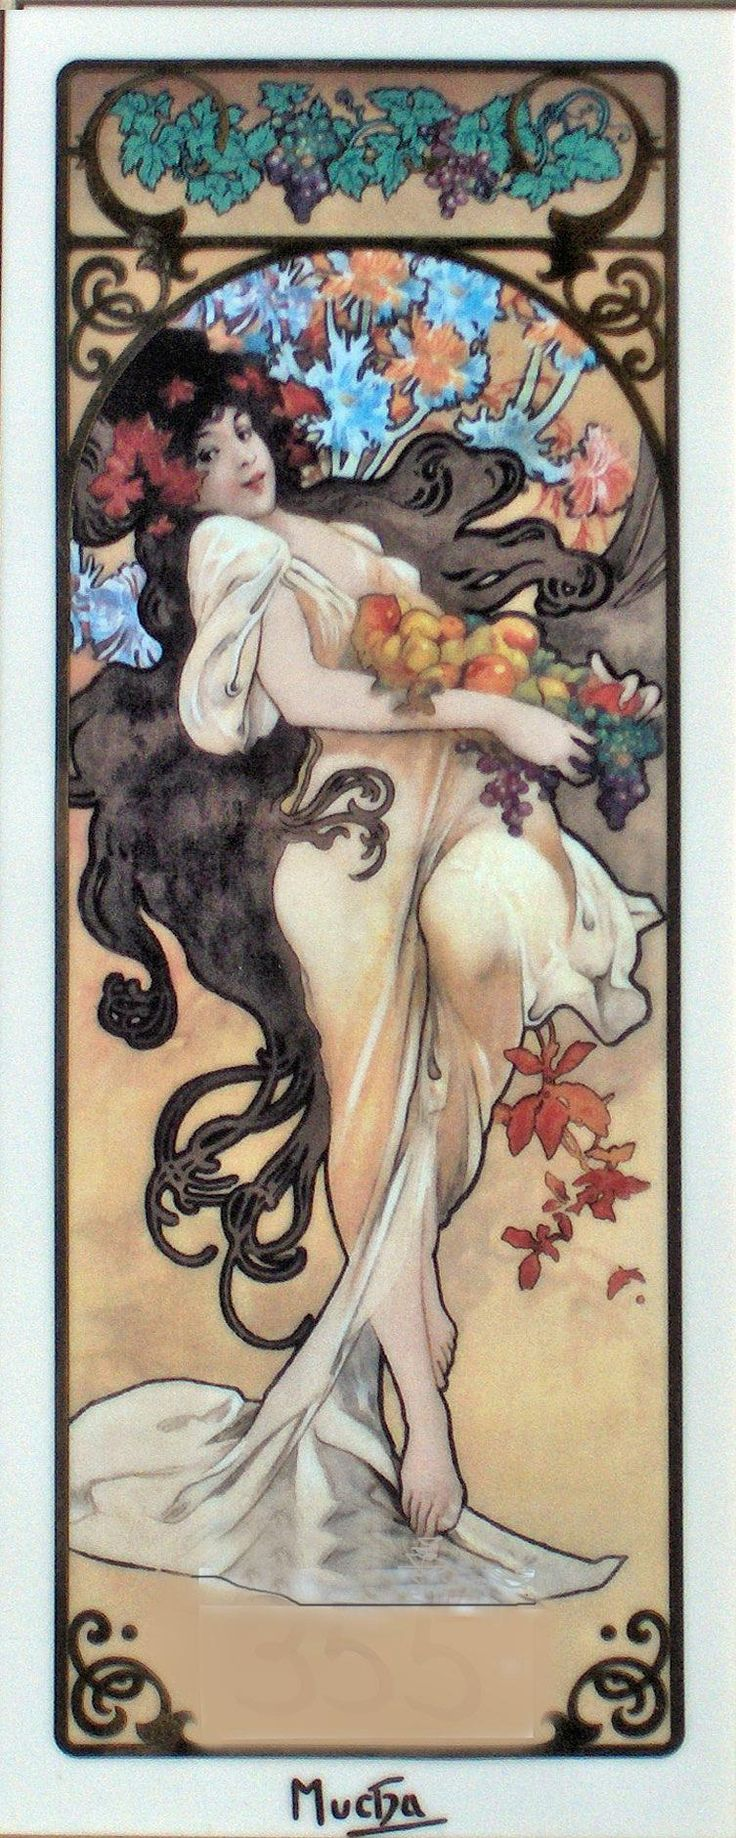 Amethyst  - Alphonse Mucha.....grew up with the four seasons in me ma & pa's house, in fact they're still there & this is so stylistically Mucha!